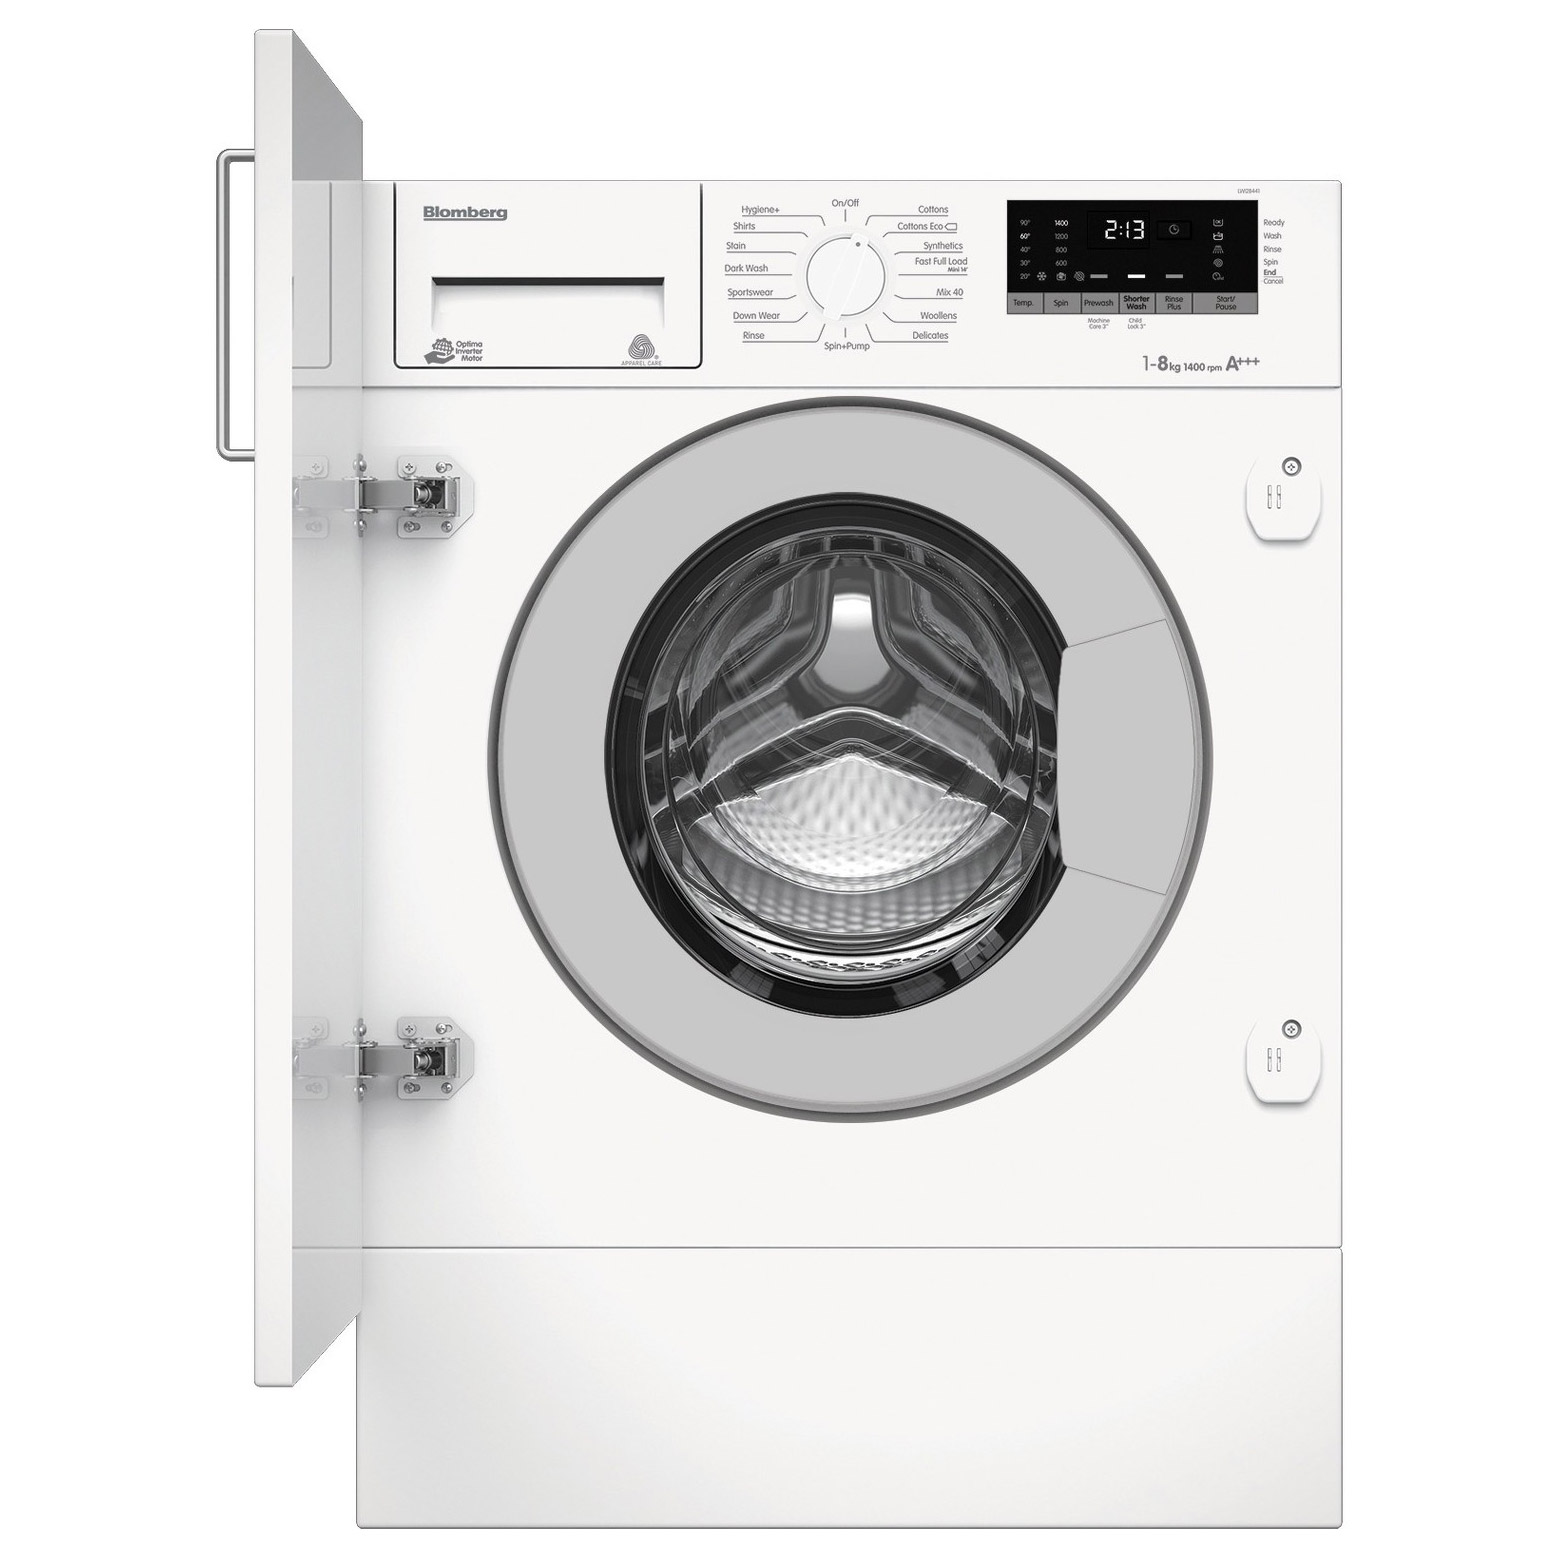 Blomberg LWI28441 Integrated Washing Machine, 1400rpm 8kg A+++ Rated